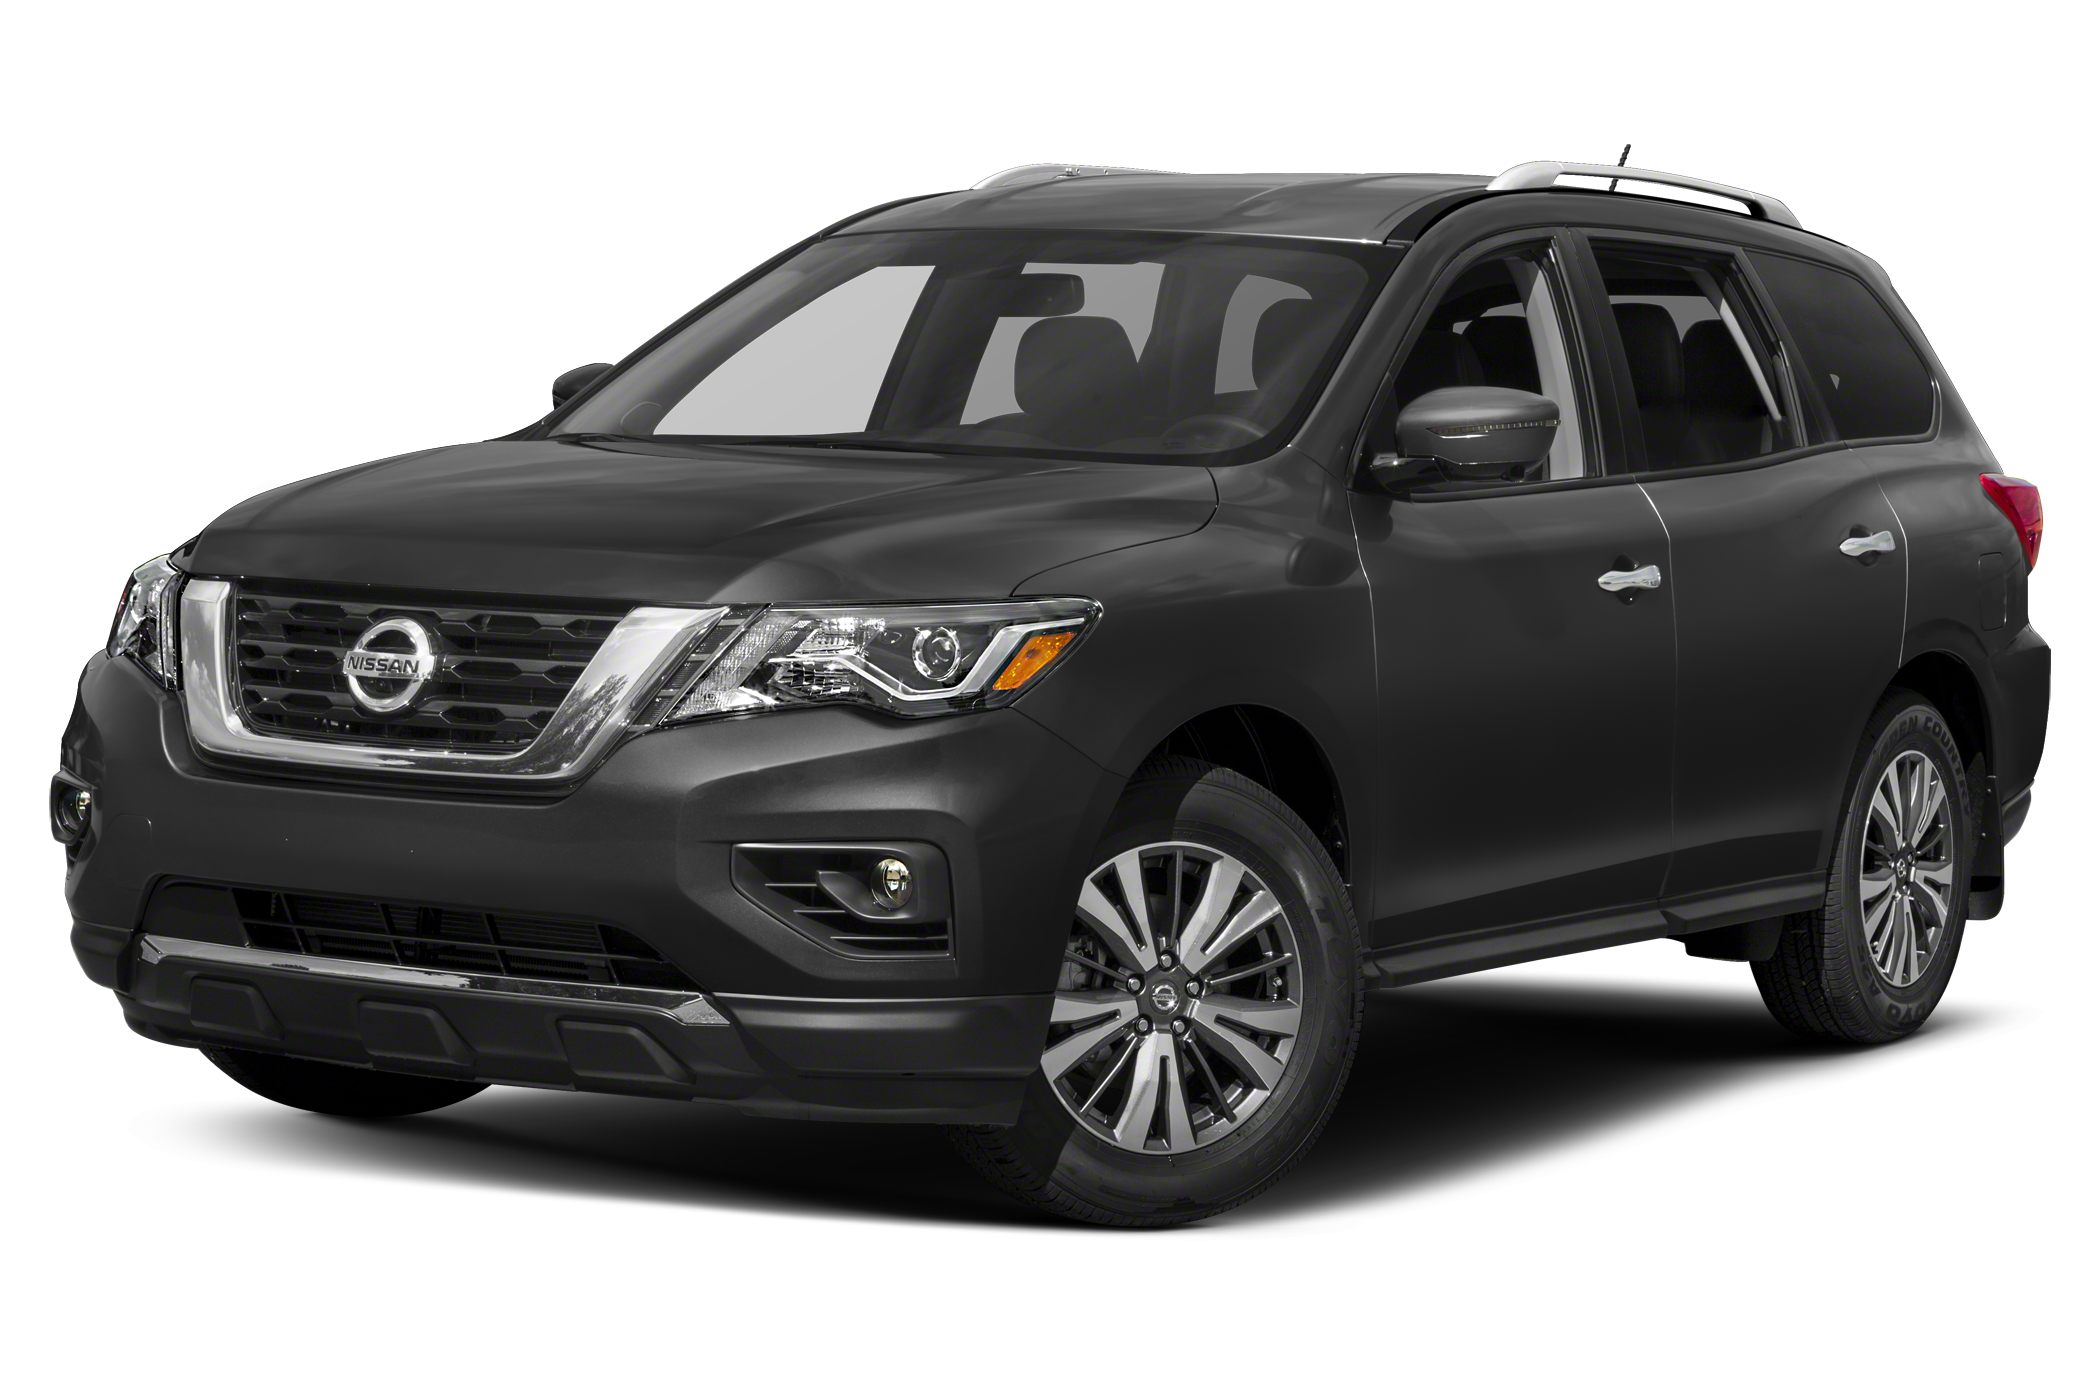 2018 Nissan Pathfinder SL 4dr 4x4 Specs and Prices